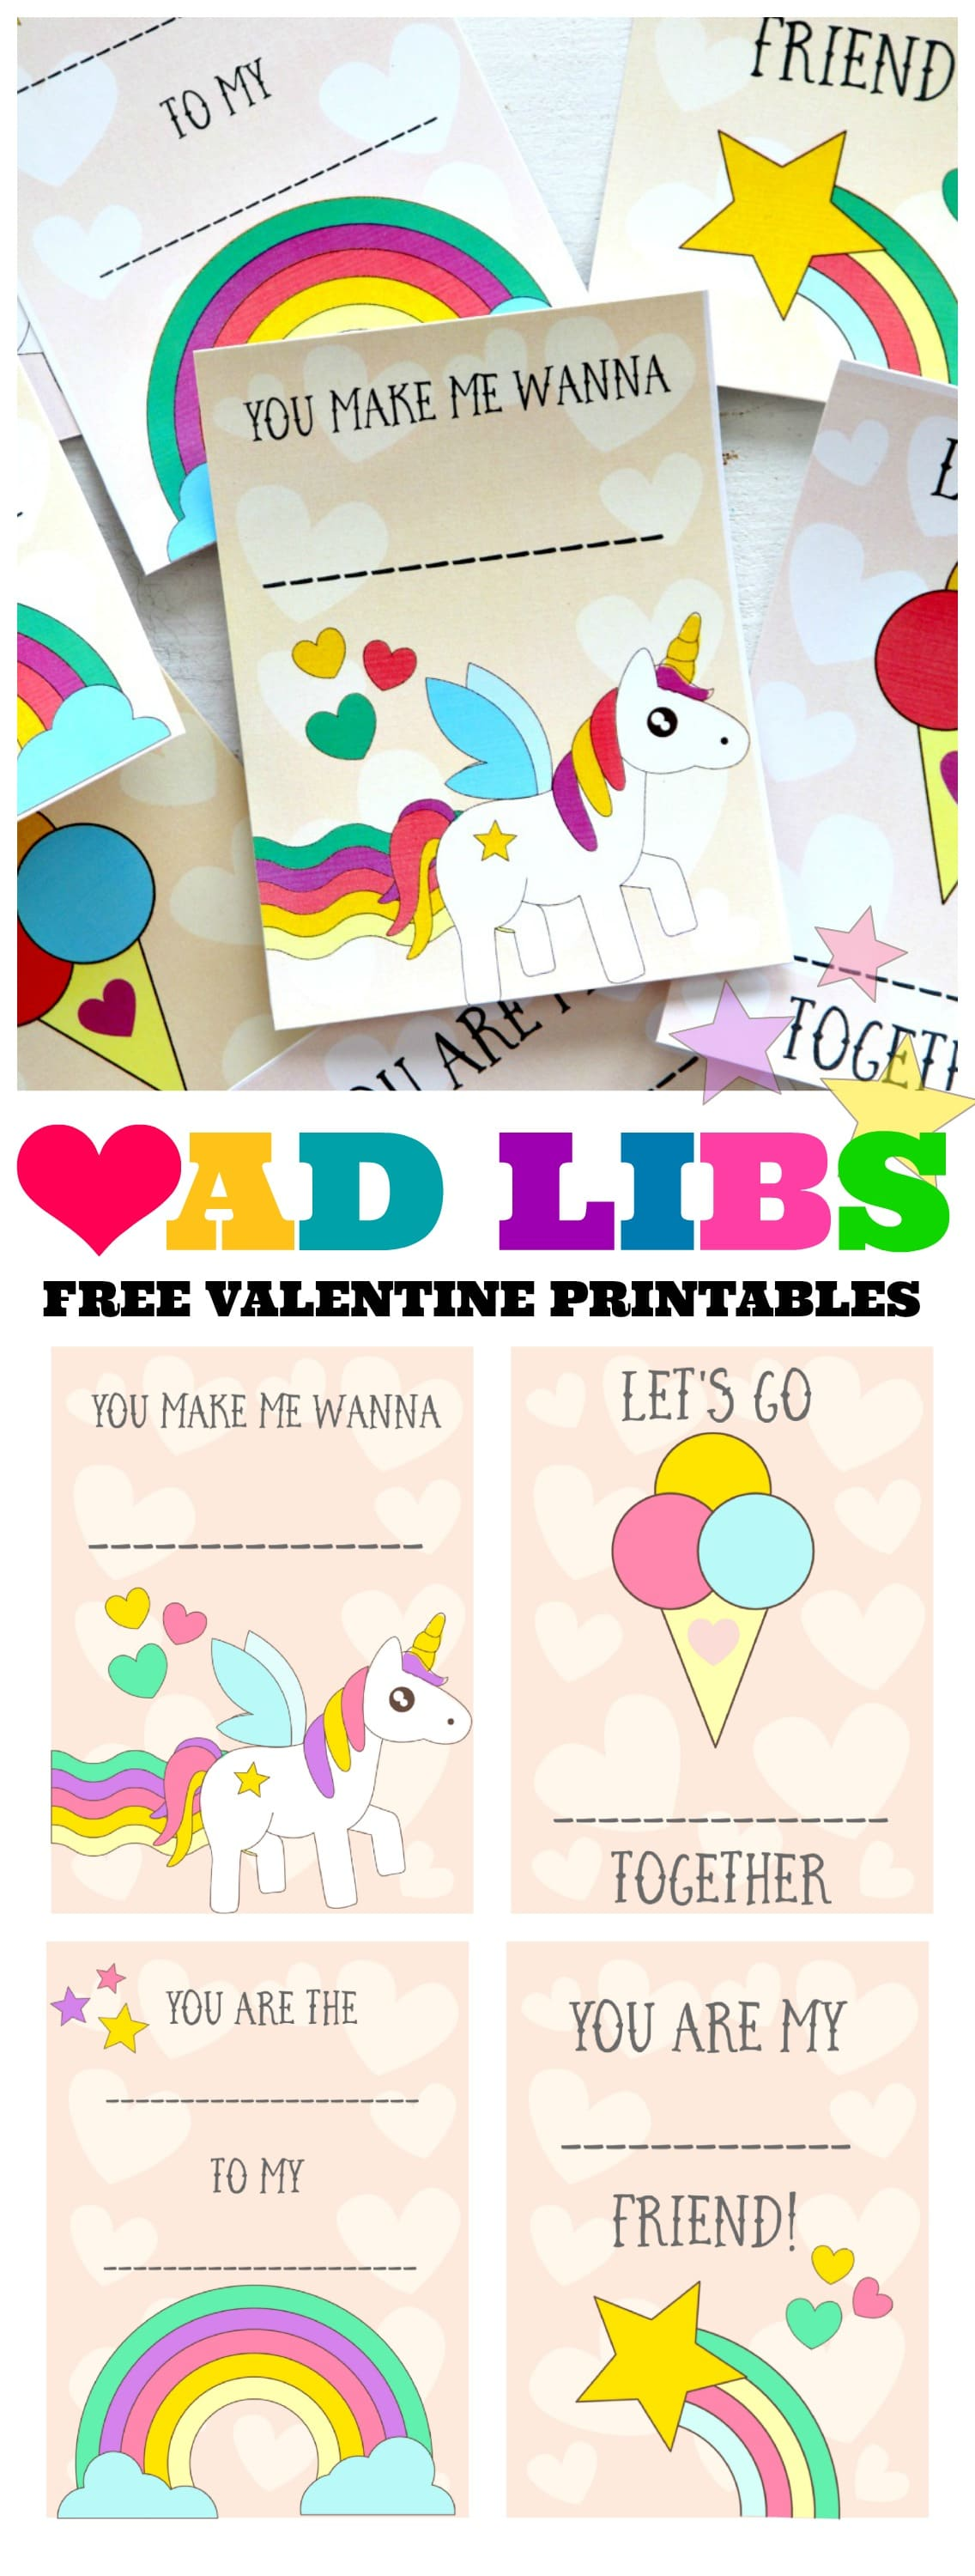 Free Valentines Day Printable Cards : Ad Lib your own Silly Saying , (comes in two colors!)